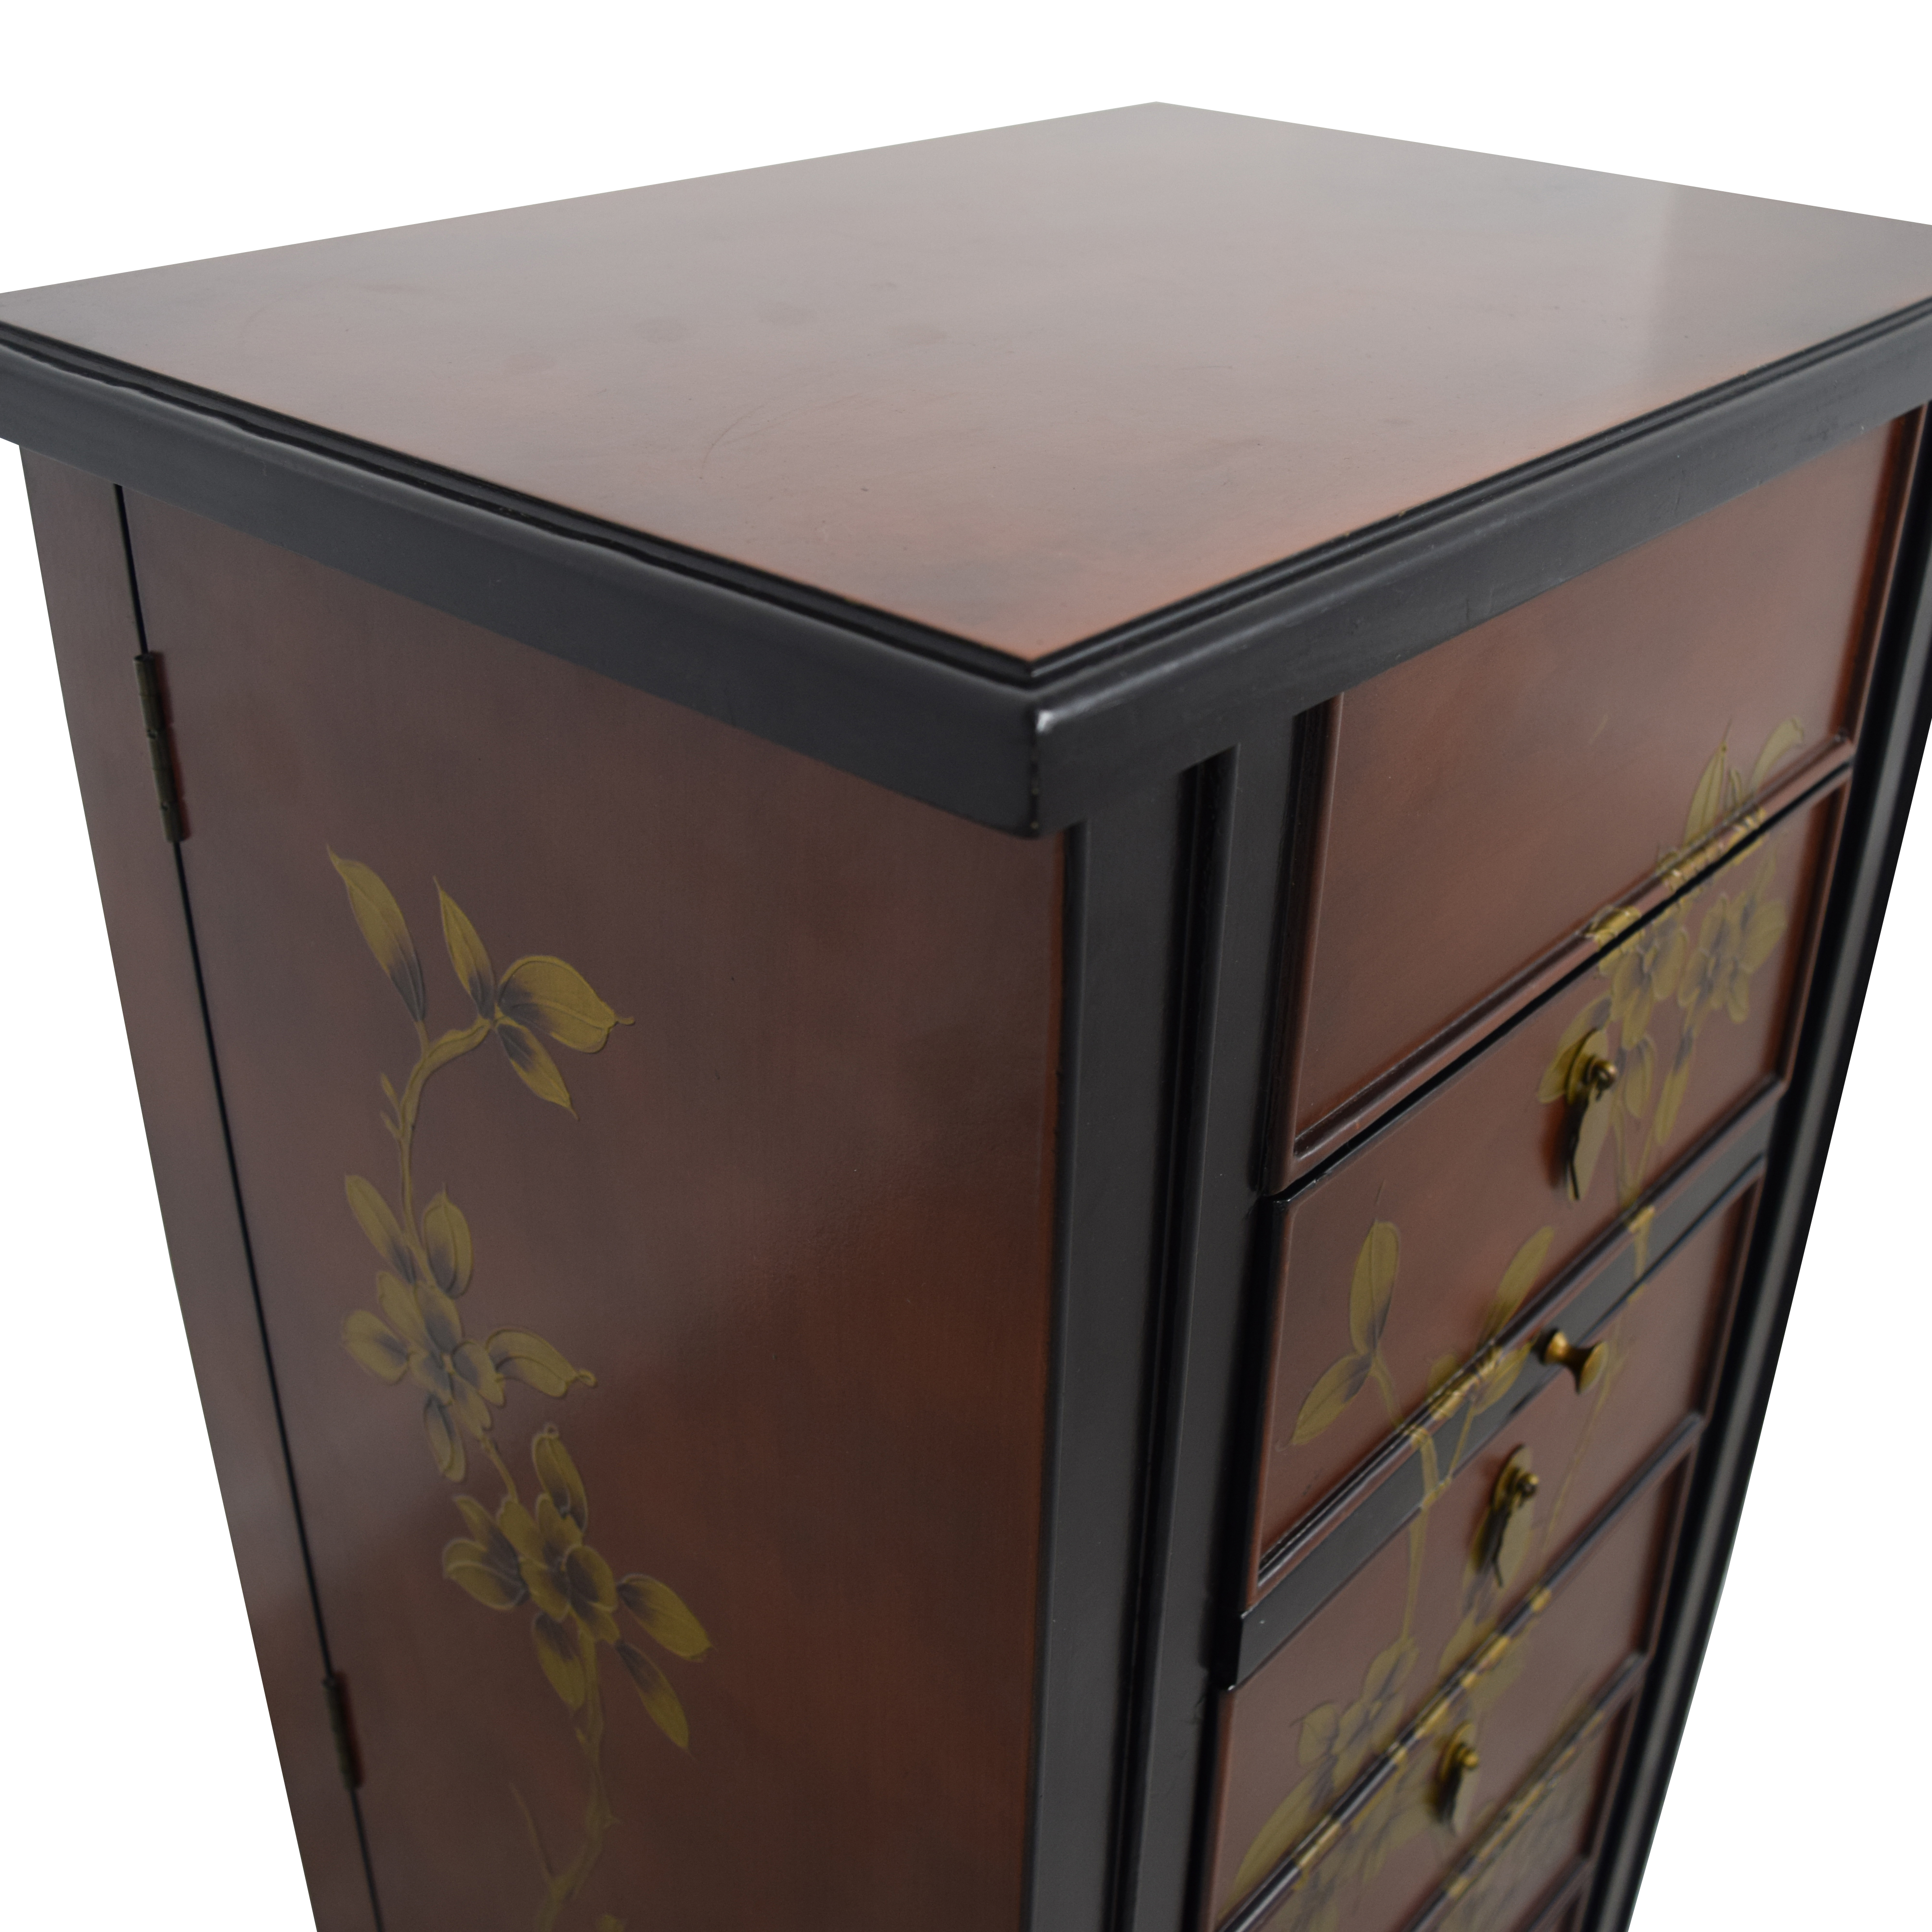 90 pier 1 pier 1 jewelry armoire tables